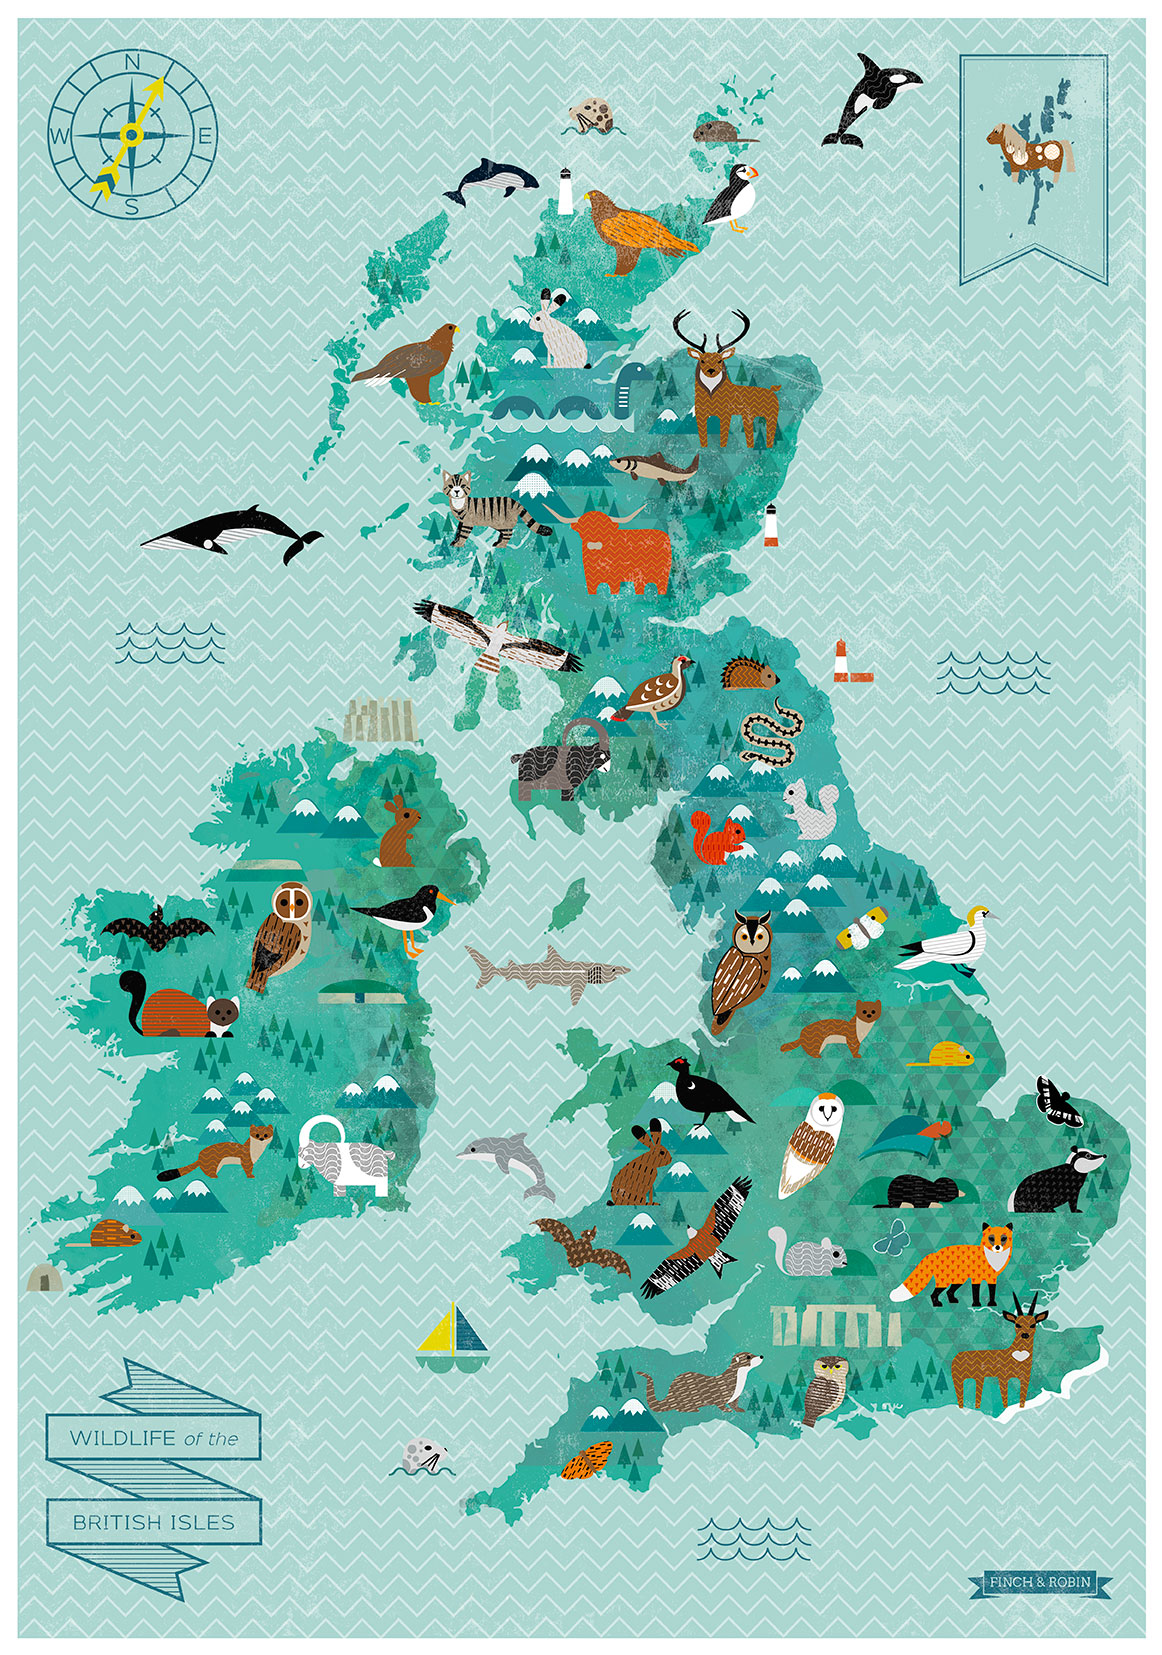 Wildlife of the British Isles, Illustrated Map   Kate McLelland